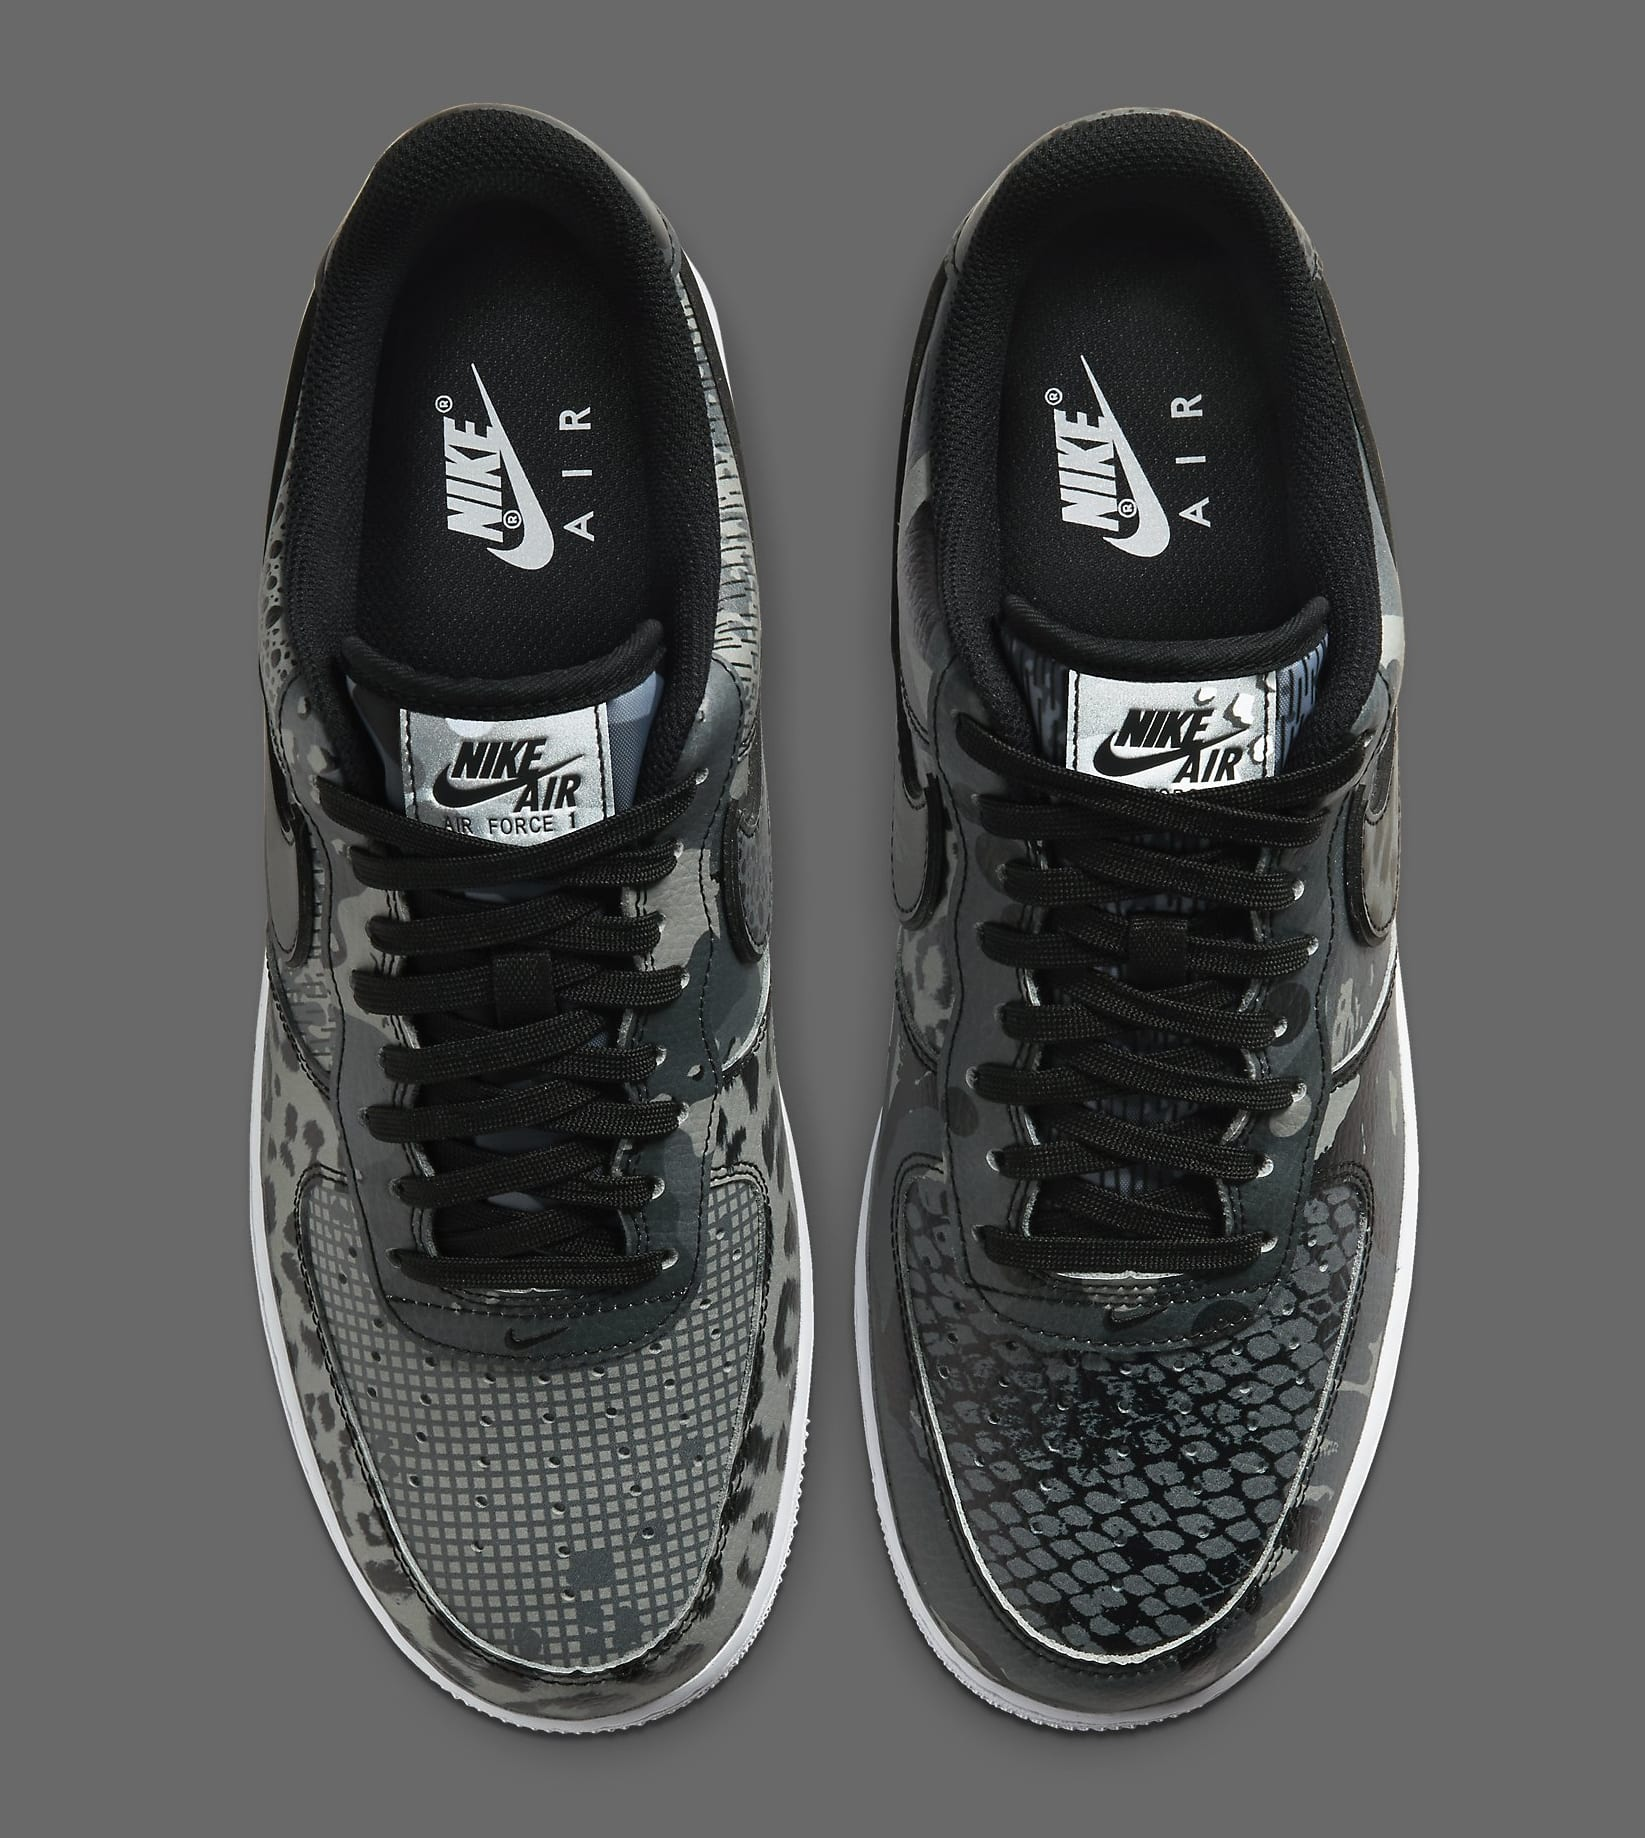 nike-air-force-1-low-all-star-ct8441-001-top